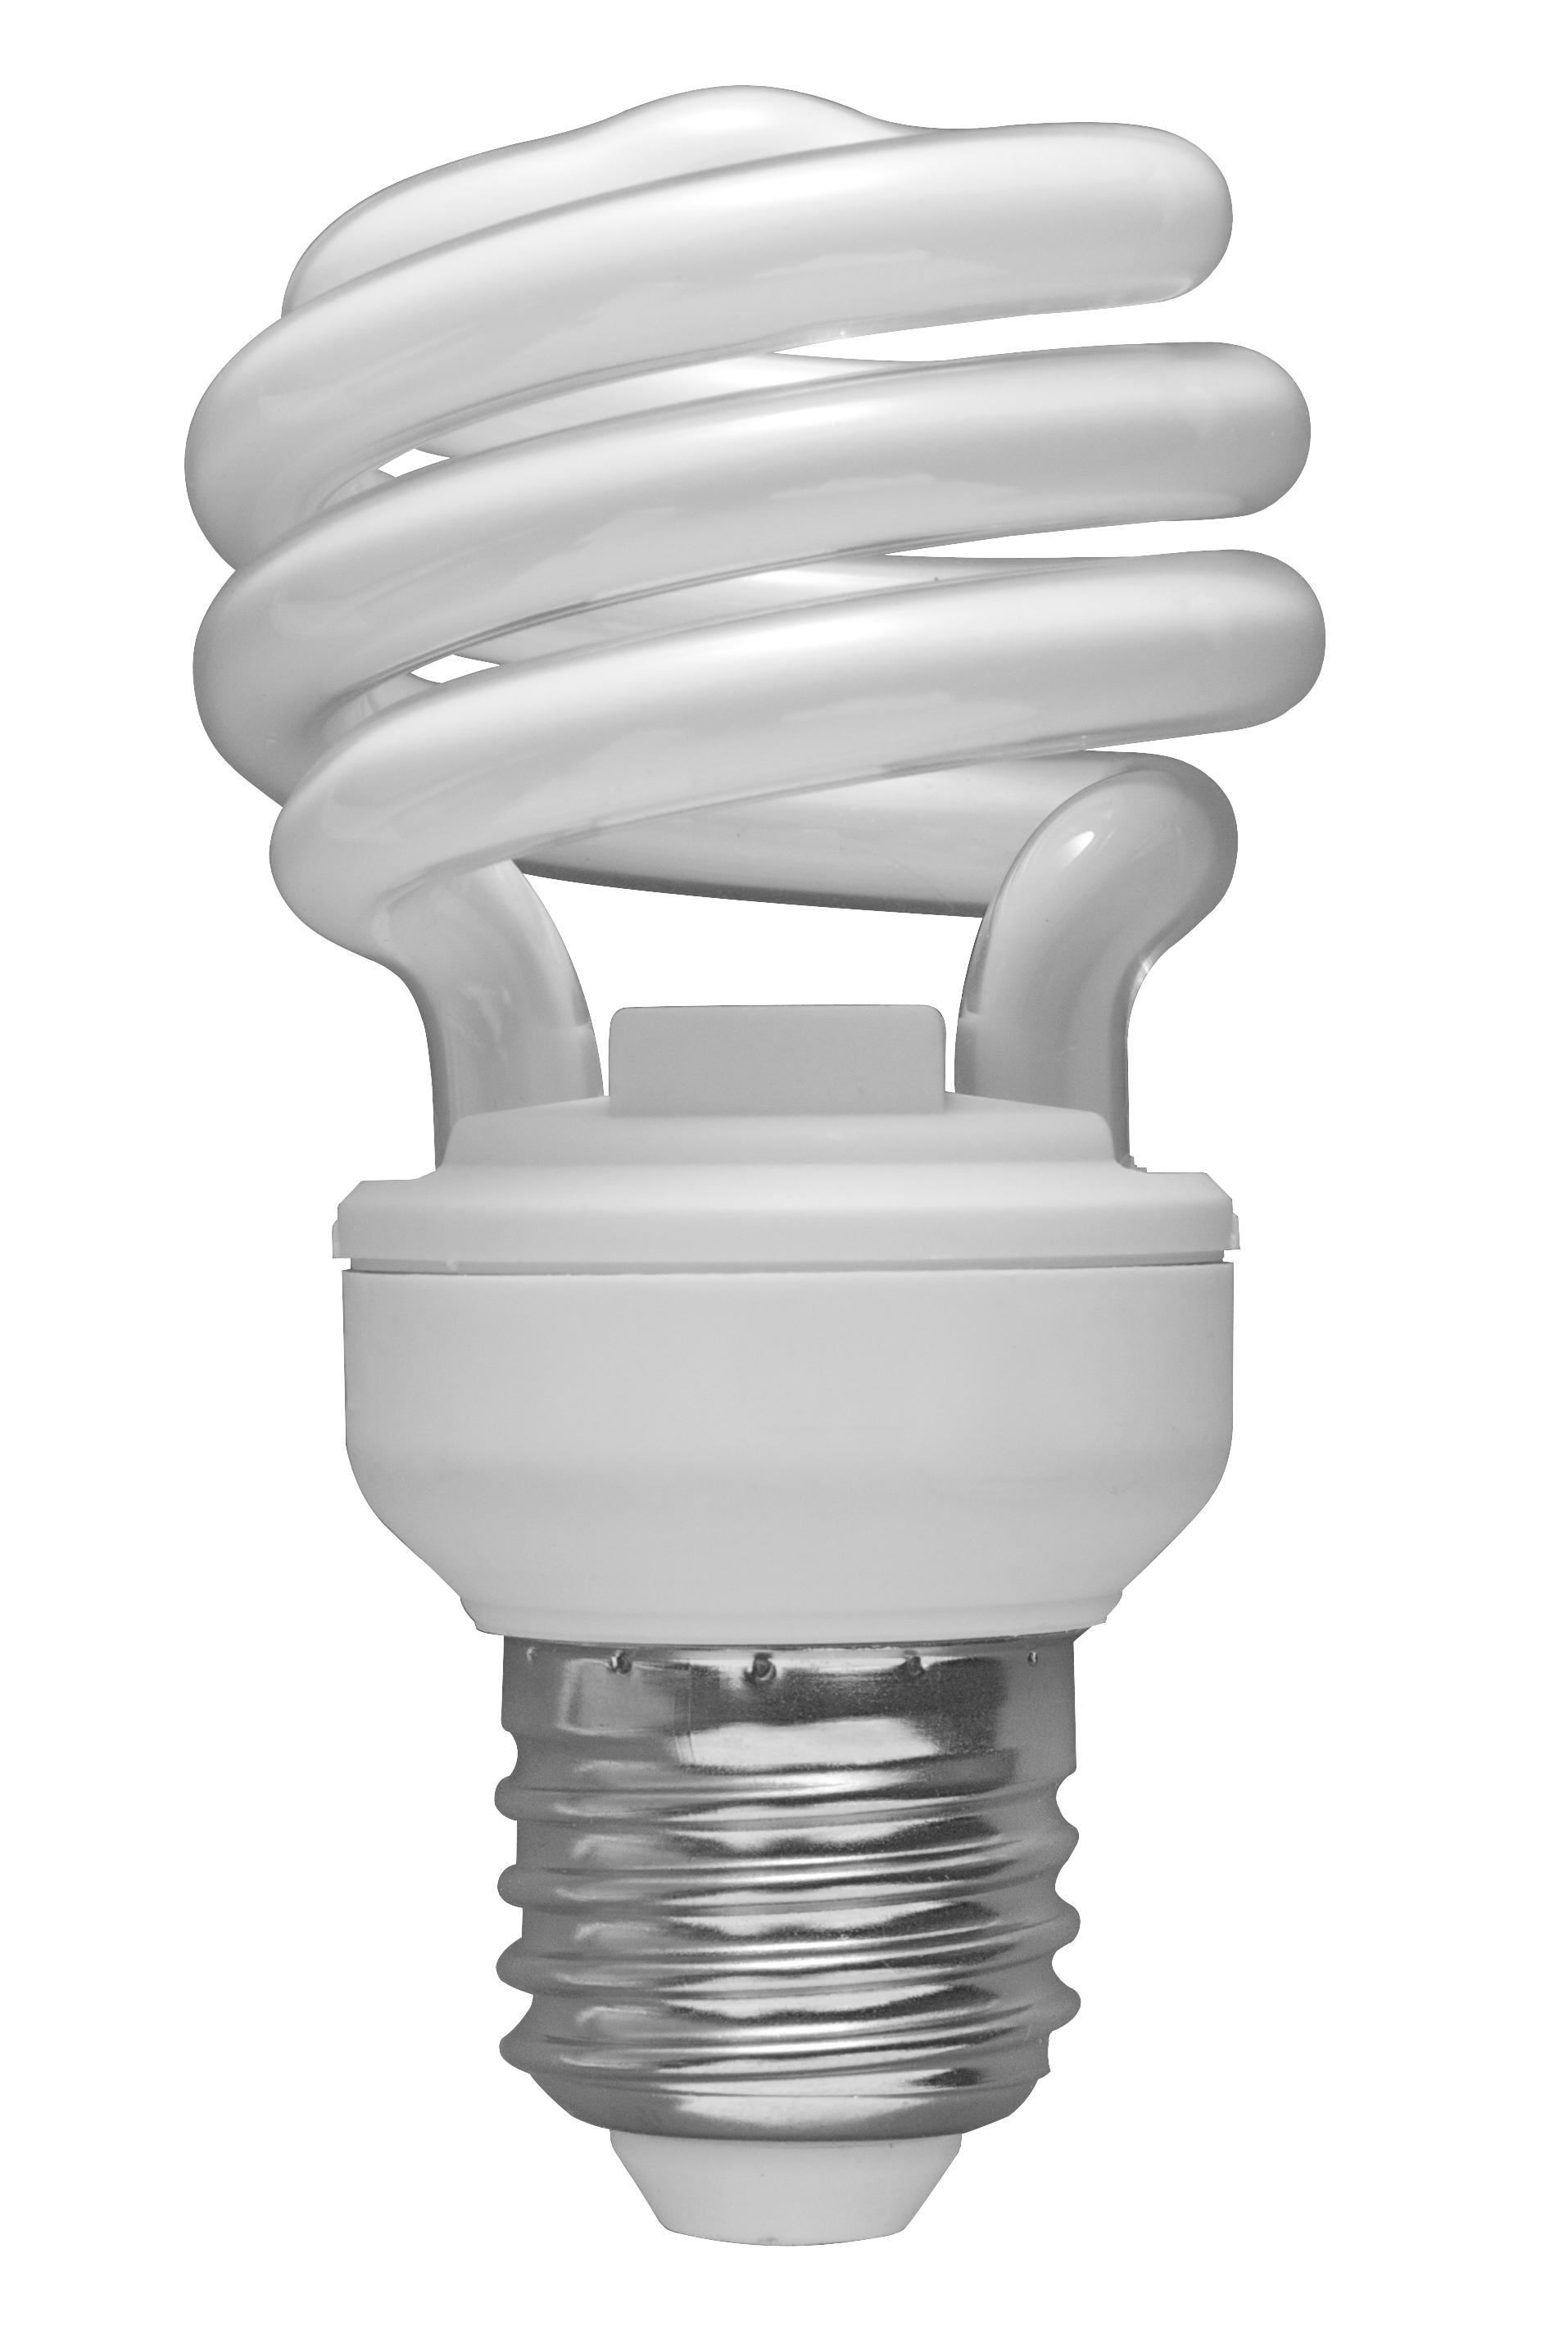 Holiday Gifts That Save Energy Money Uga Greenway News: cost of light bulb